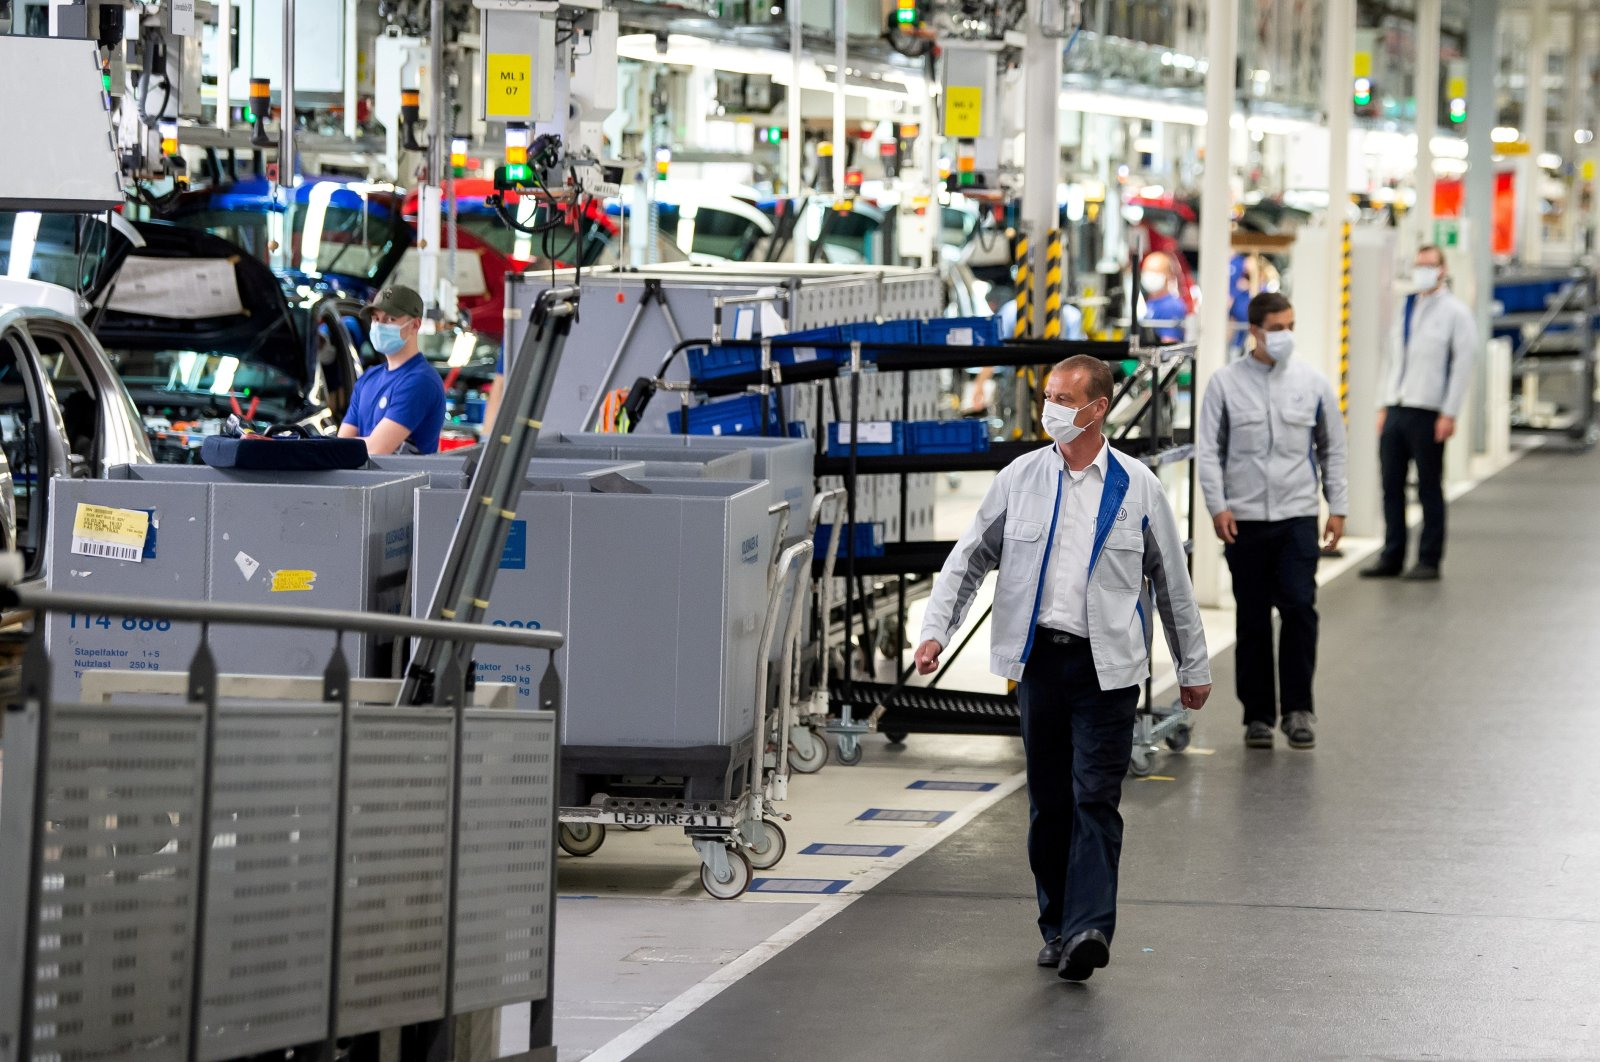 Staff wear protective masks at the Volkswagen assembly line in Wolfsburg, Germany, April 27, 2020. (Reuters Photo)